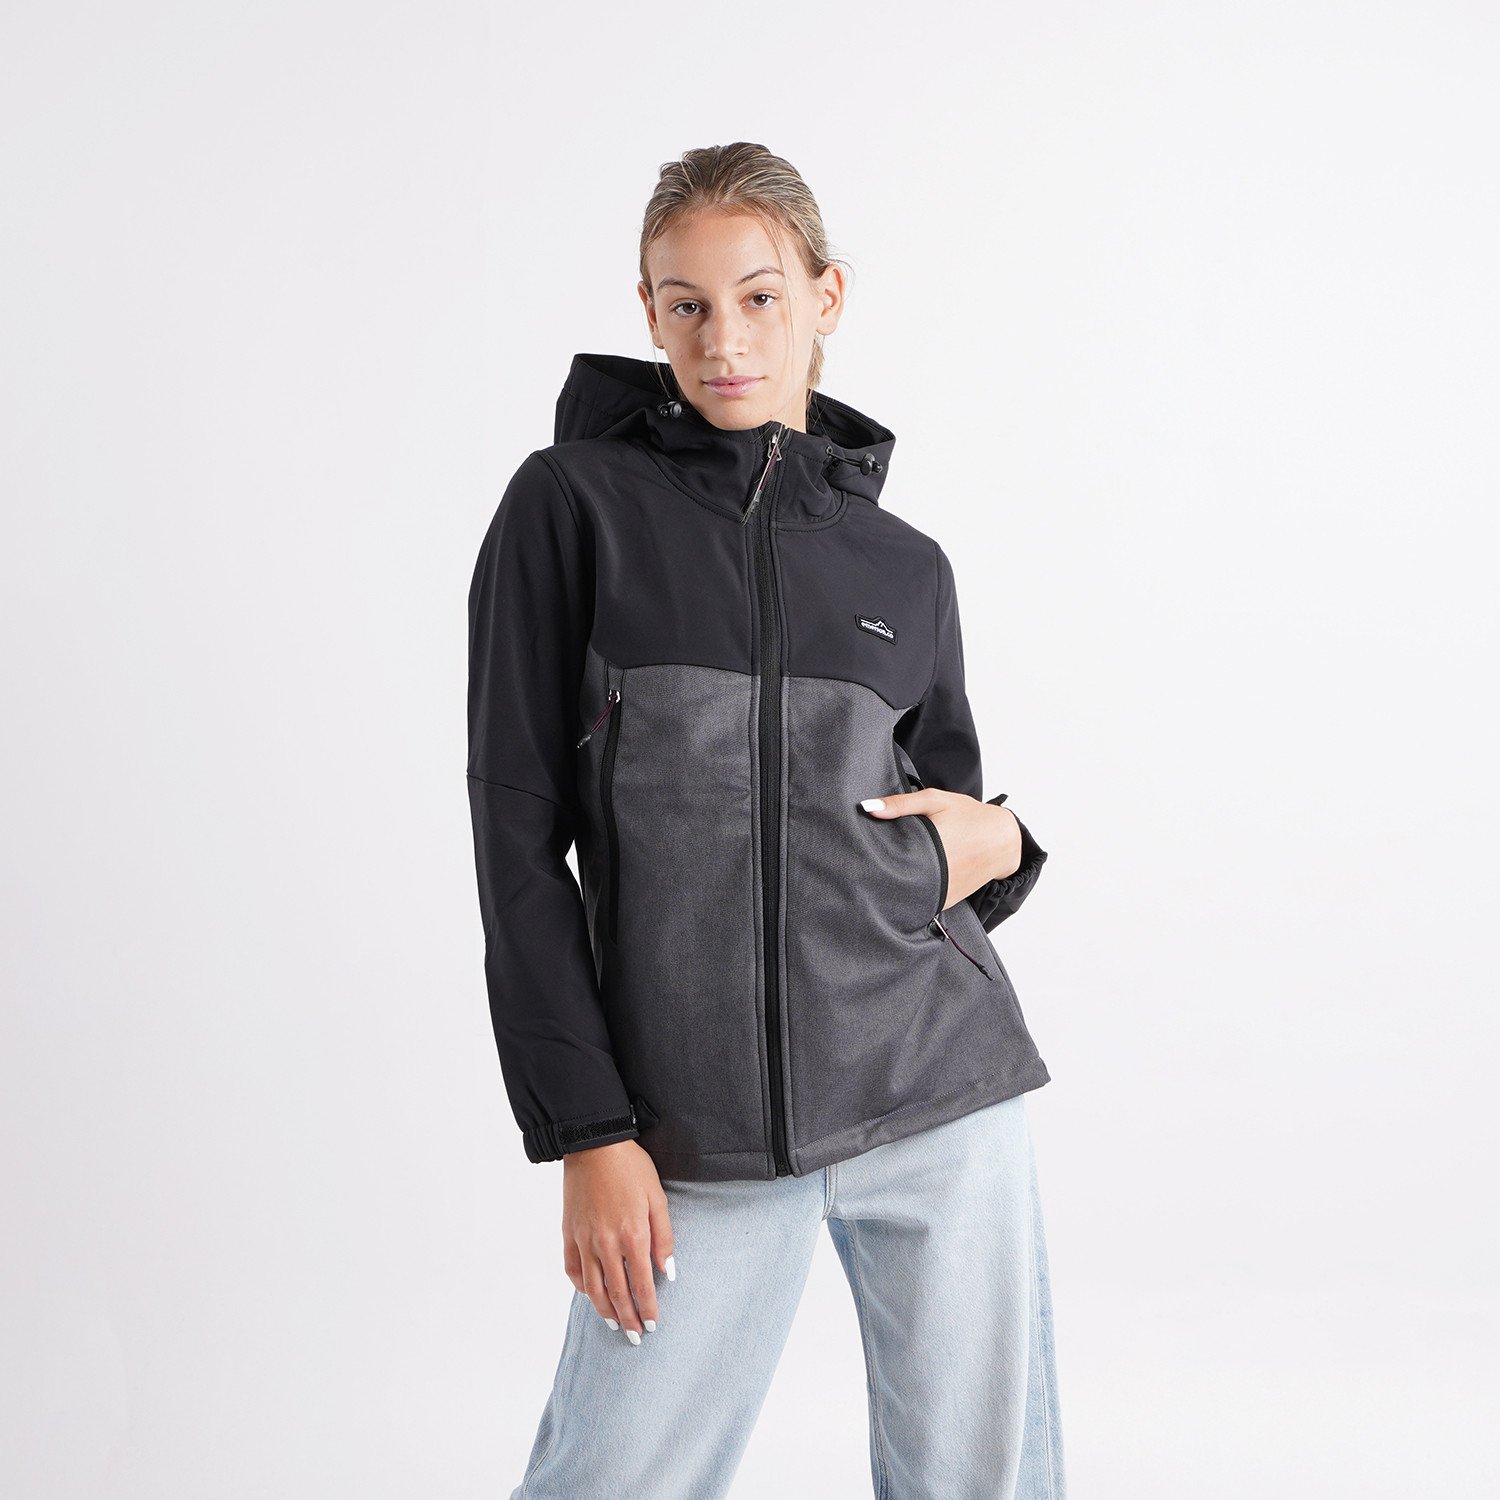 Emerson Women's Soft Shell Jacket with Hood (9000054068_35261)